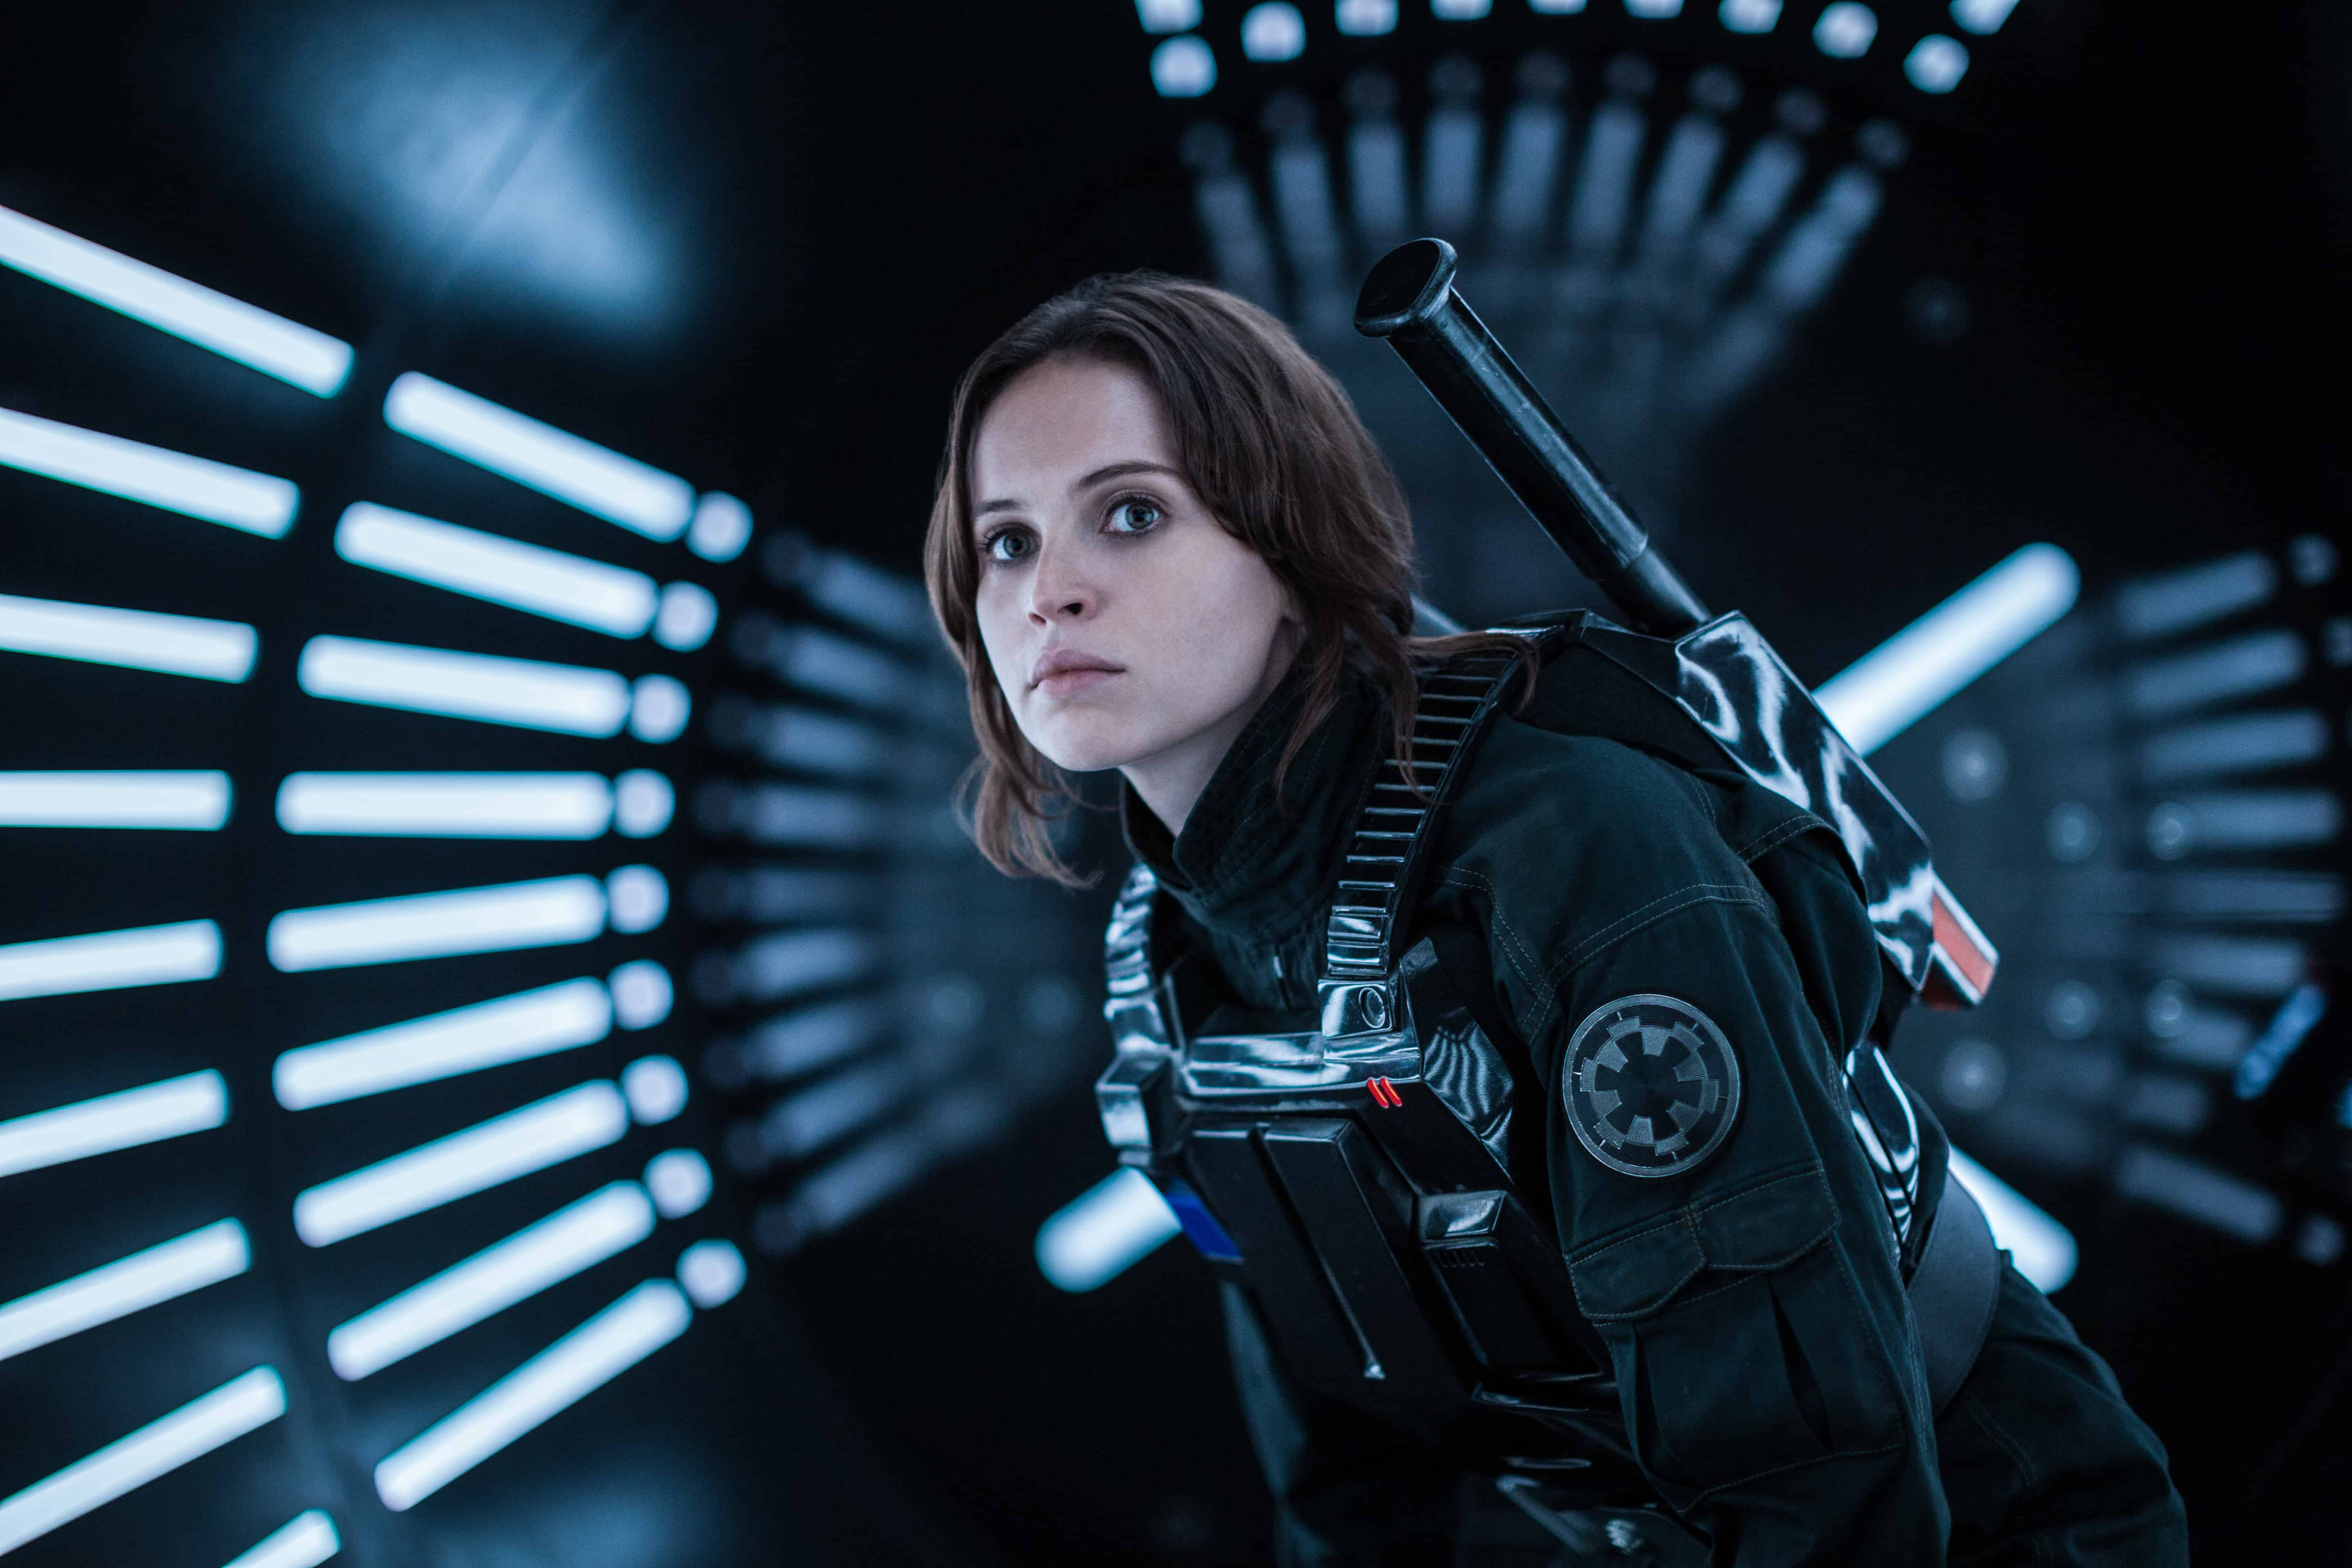 Join the Rebellion with Rogue One